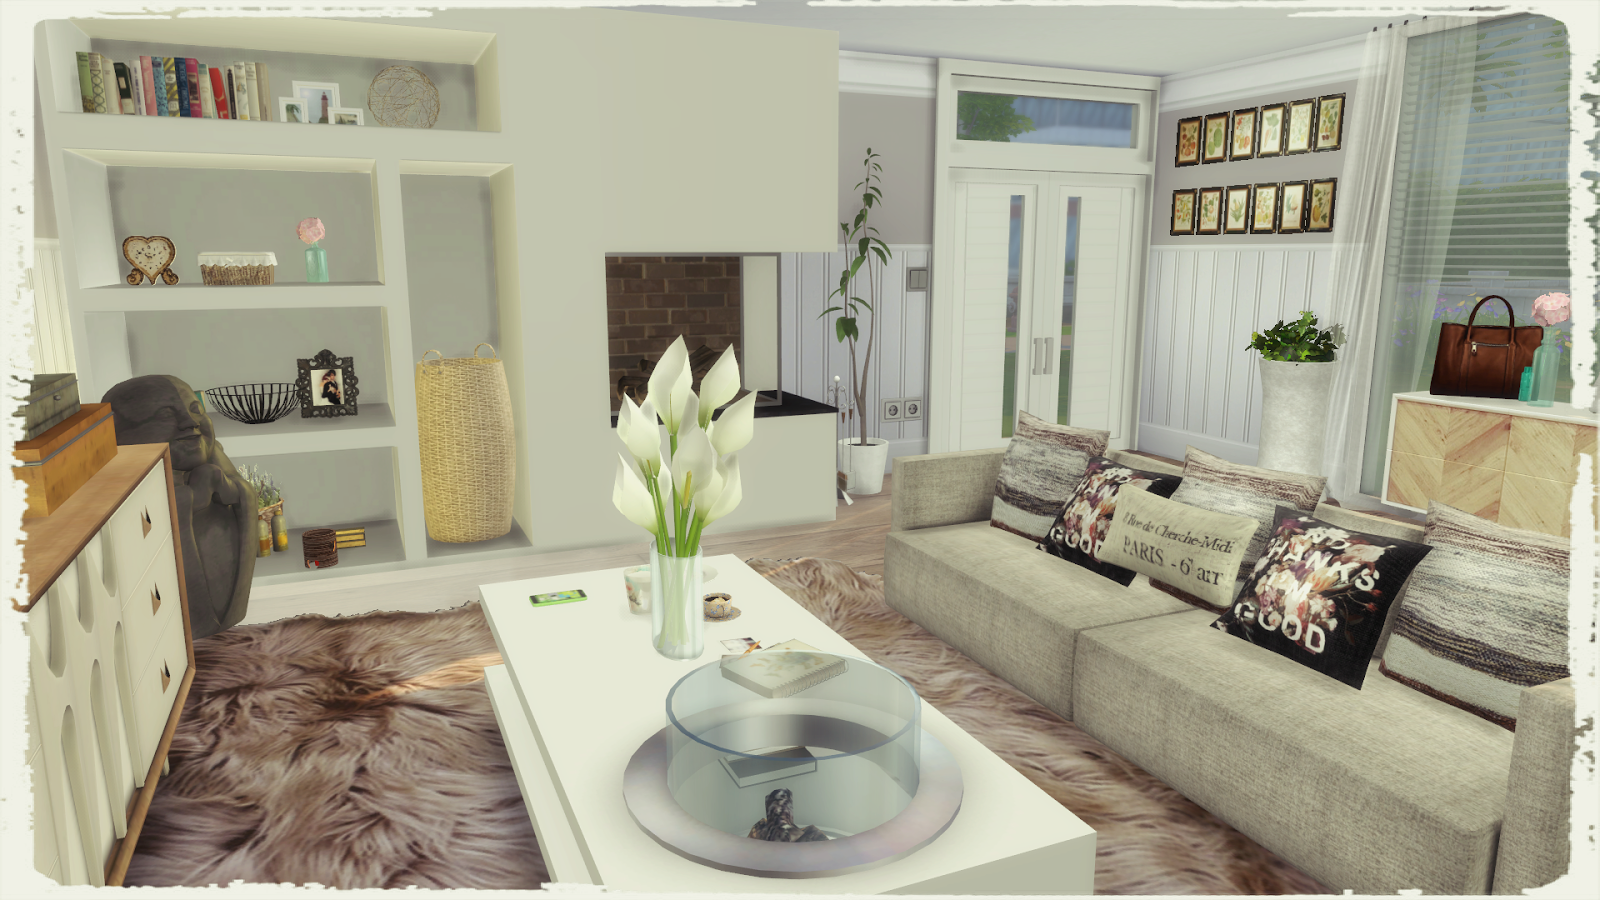 Modern Living Room Sims 4 Of Sims 4 Modern Living Room Dinha